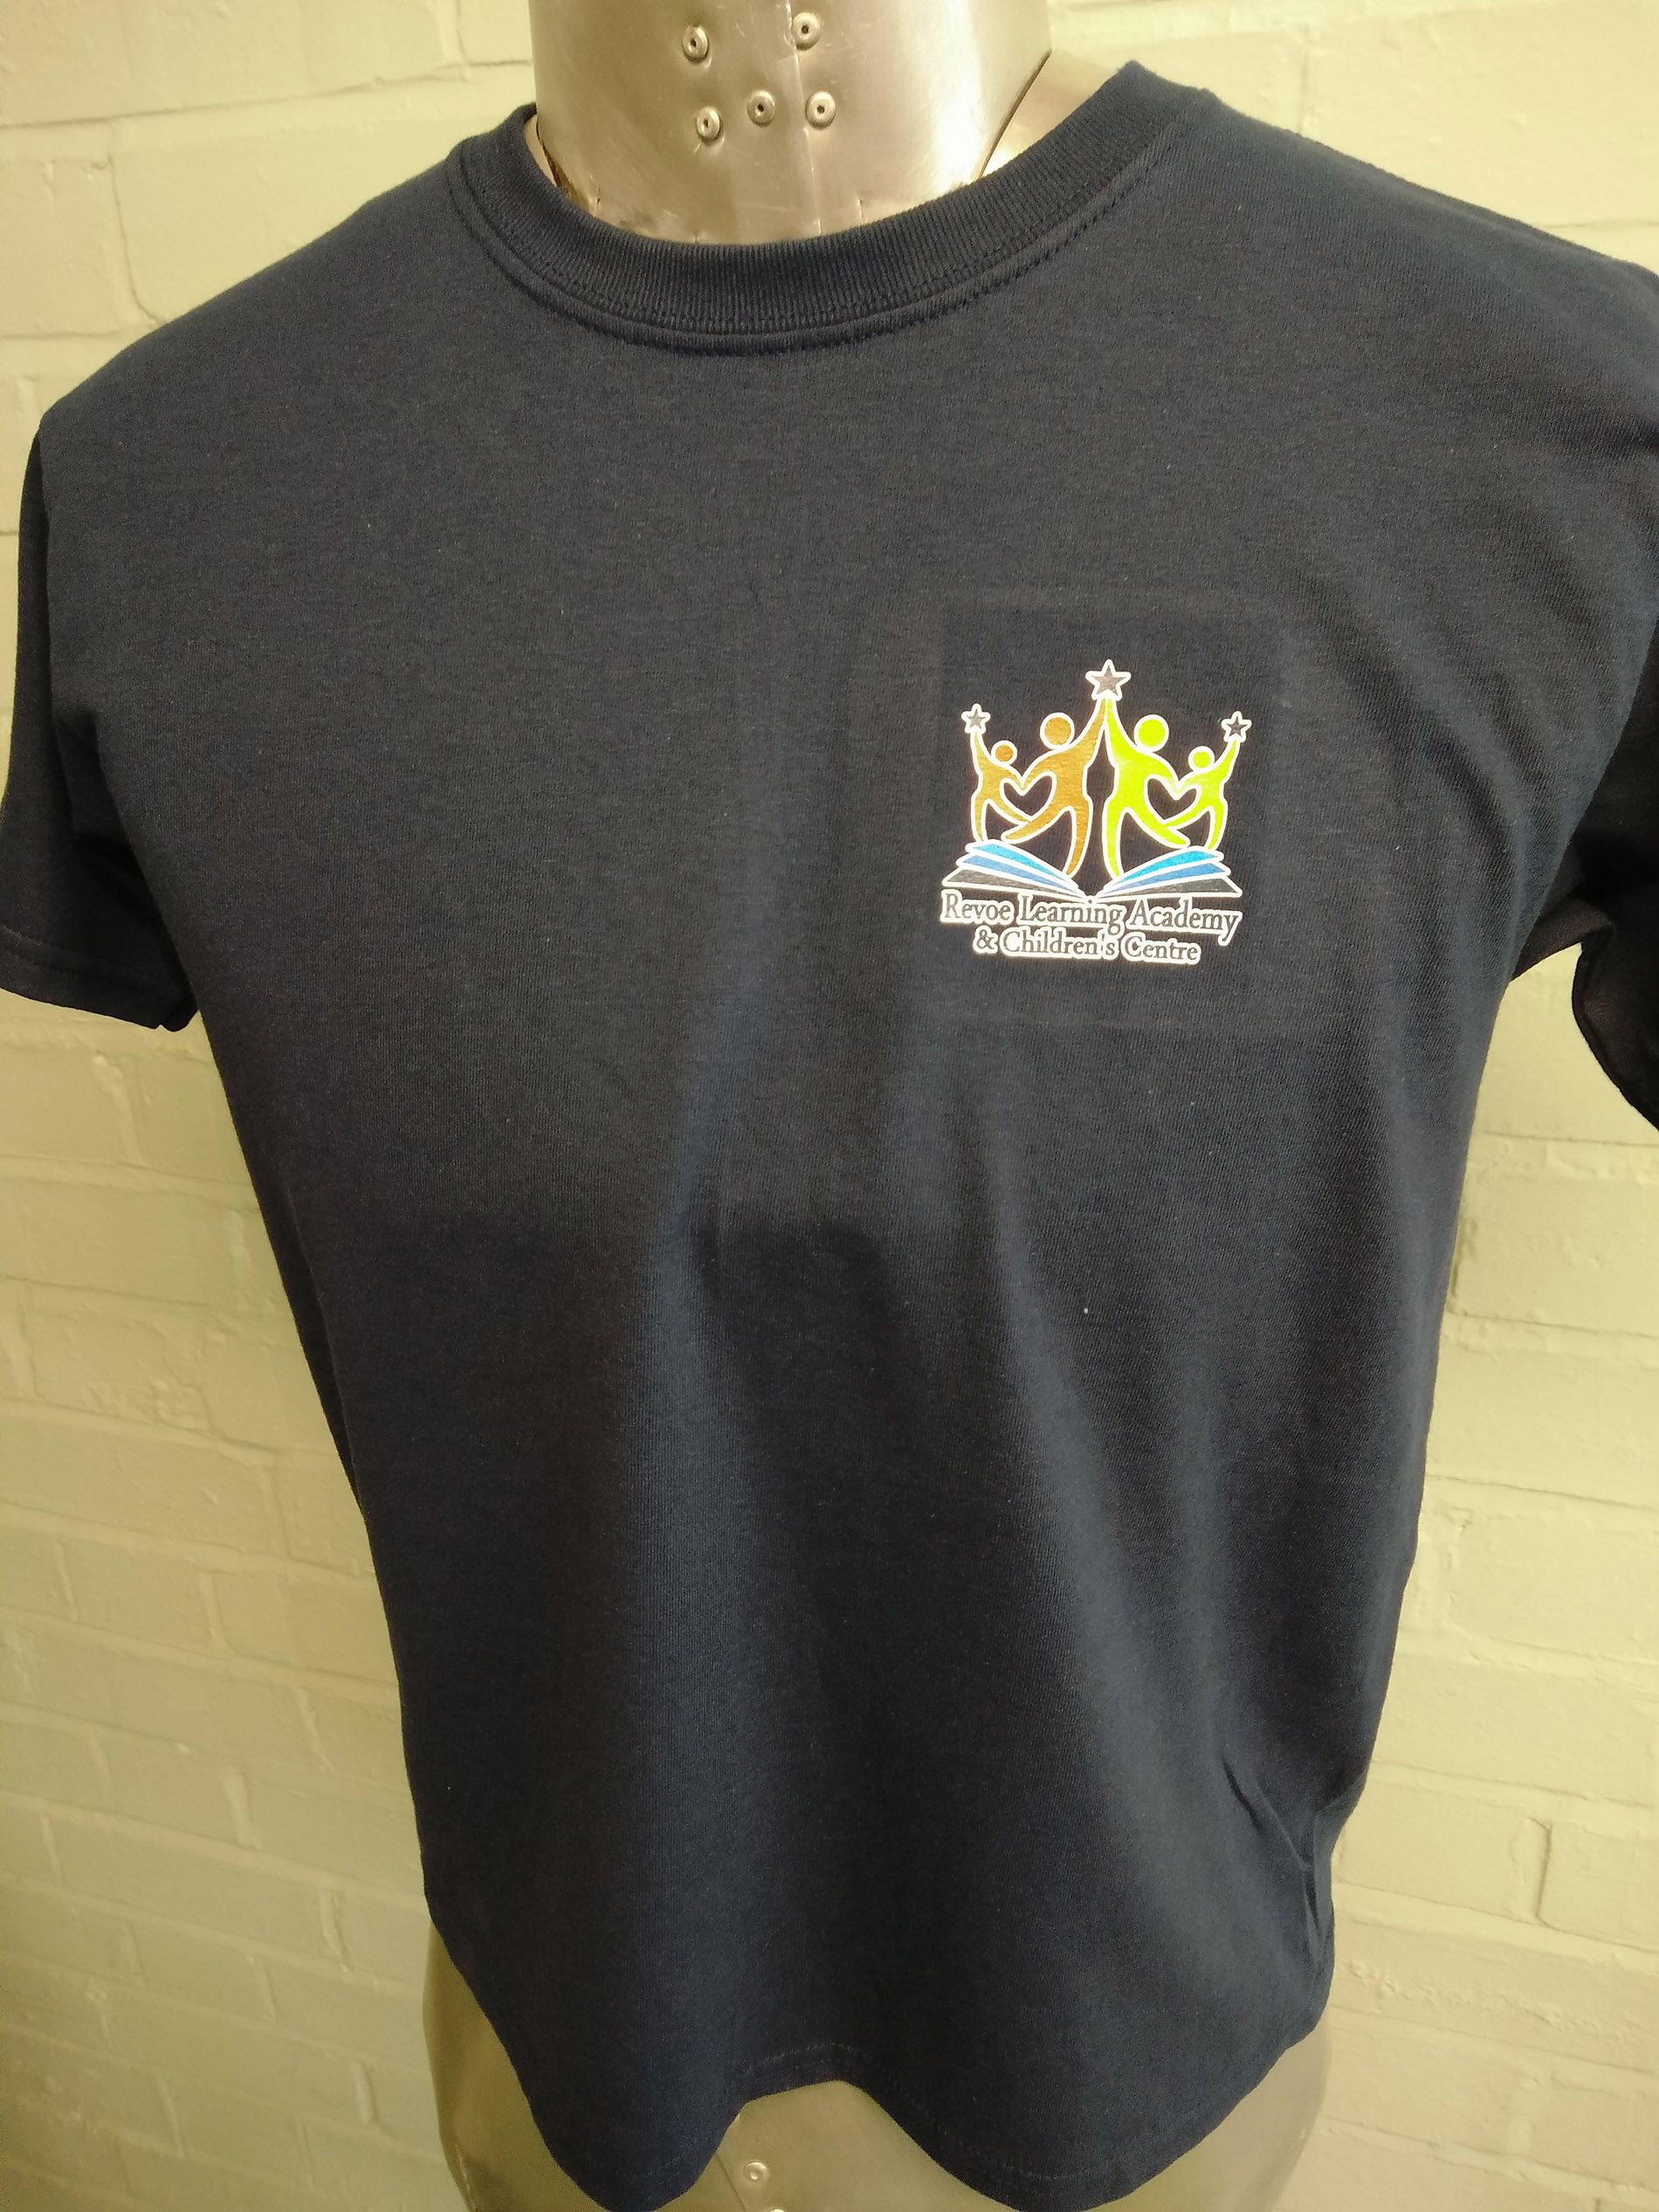 Short Sleeved Black T Shirts With Custom Leavers Print Logos On For